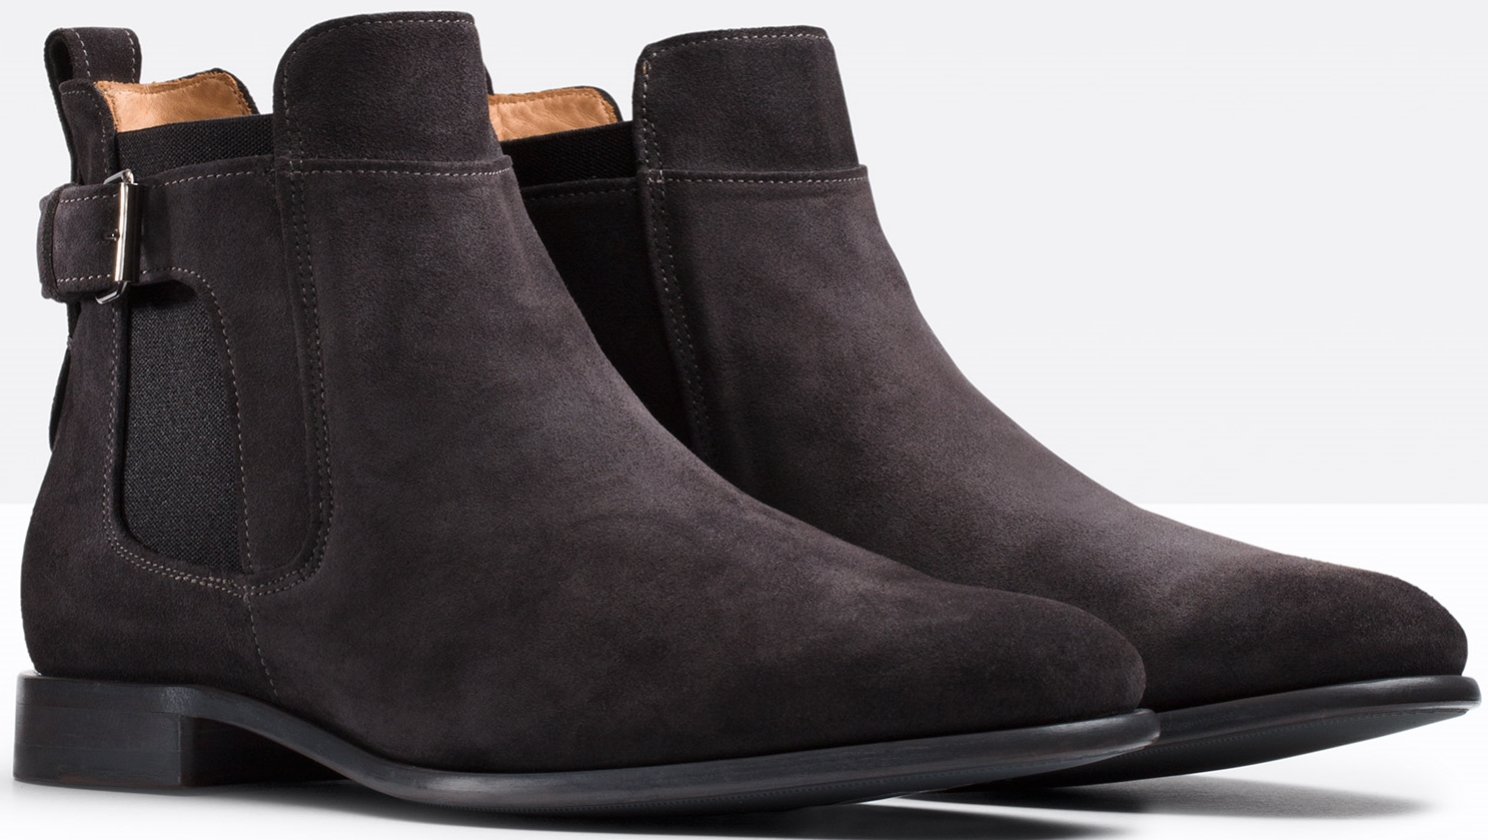 VINCE Aston Sport Suede Boot, $495